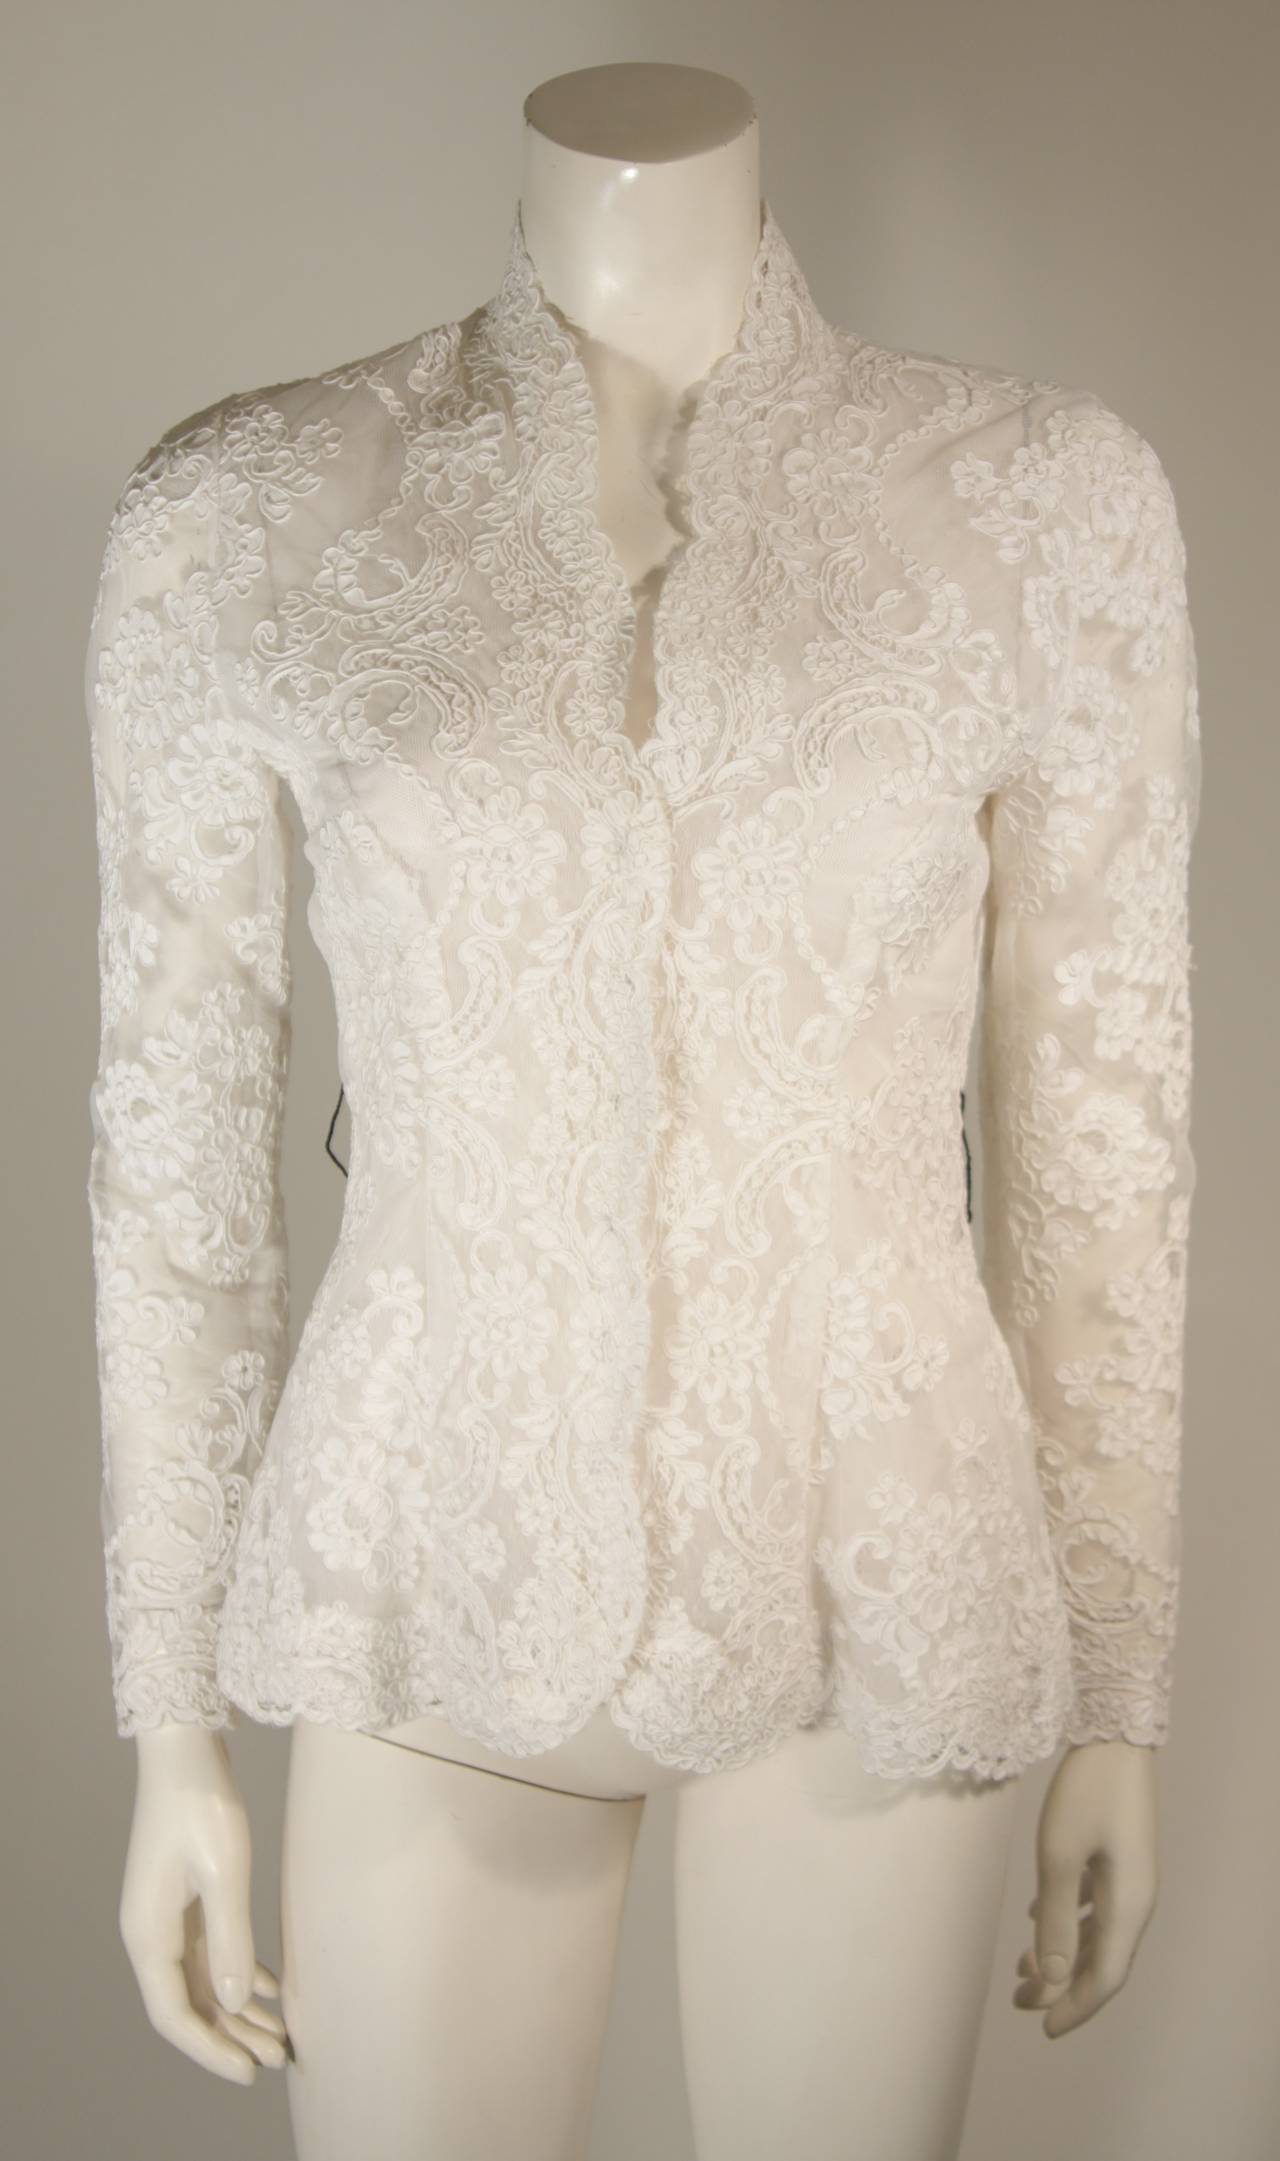 Victor Costa White Lace Scalloped Edge Long Sleeve Blouse Size 4 6 8 For Sale 1